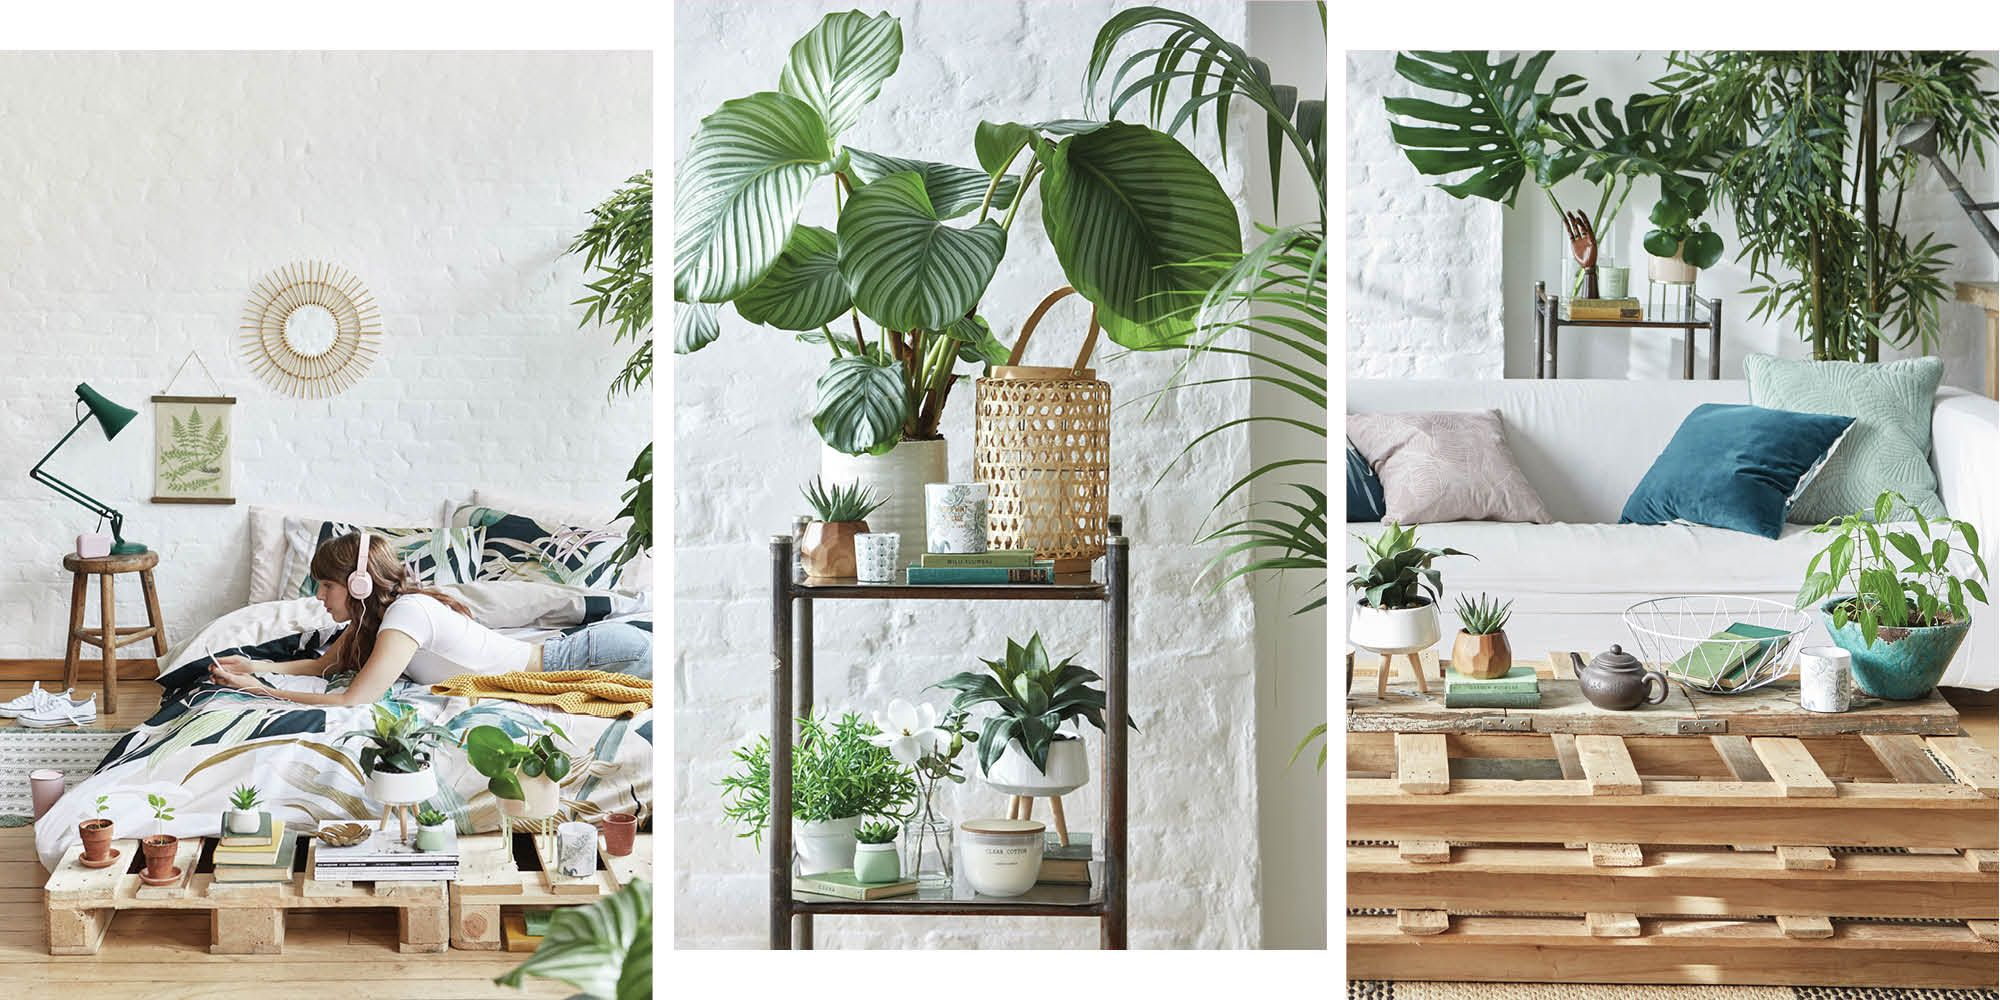 As usual, you're going to want all of Primark's new S/S homeware stuff